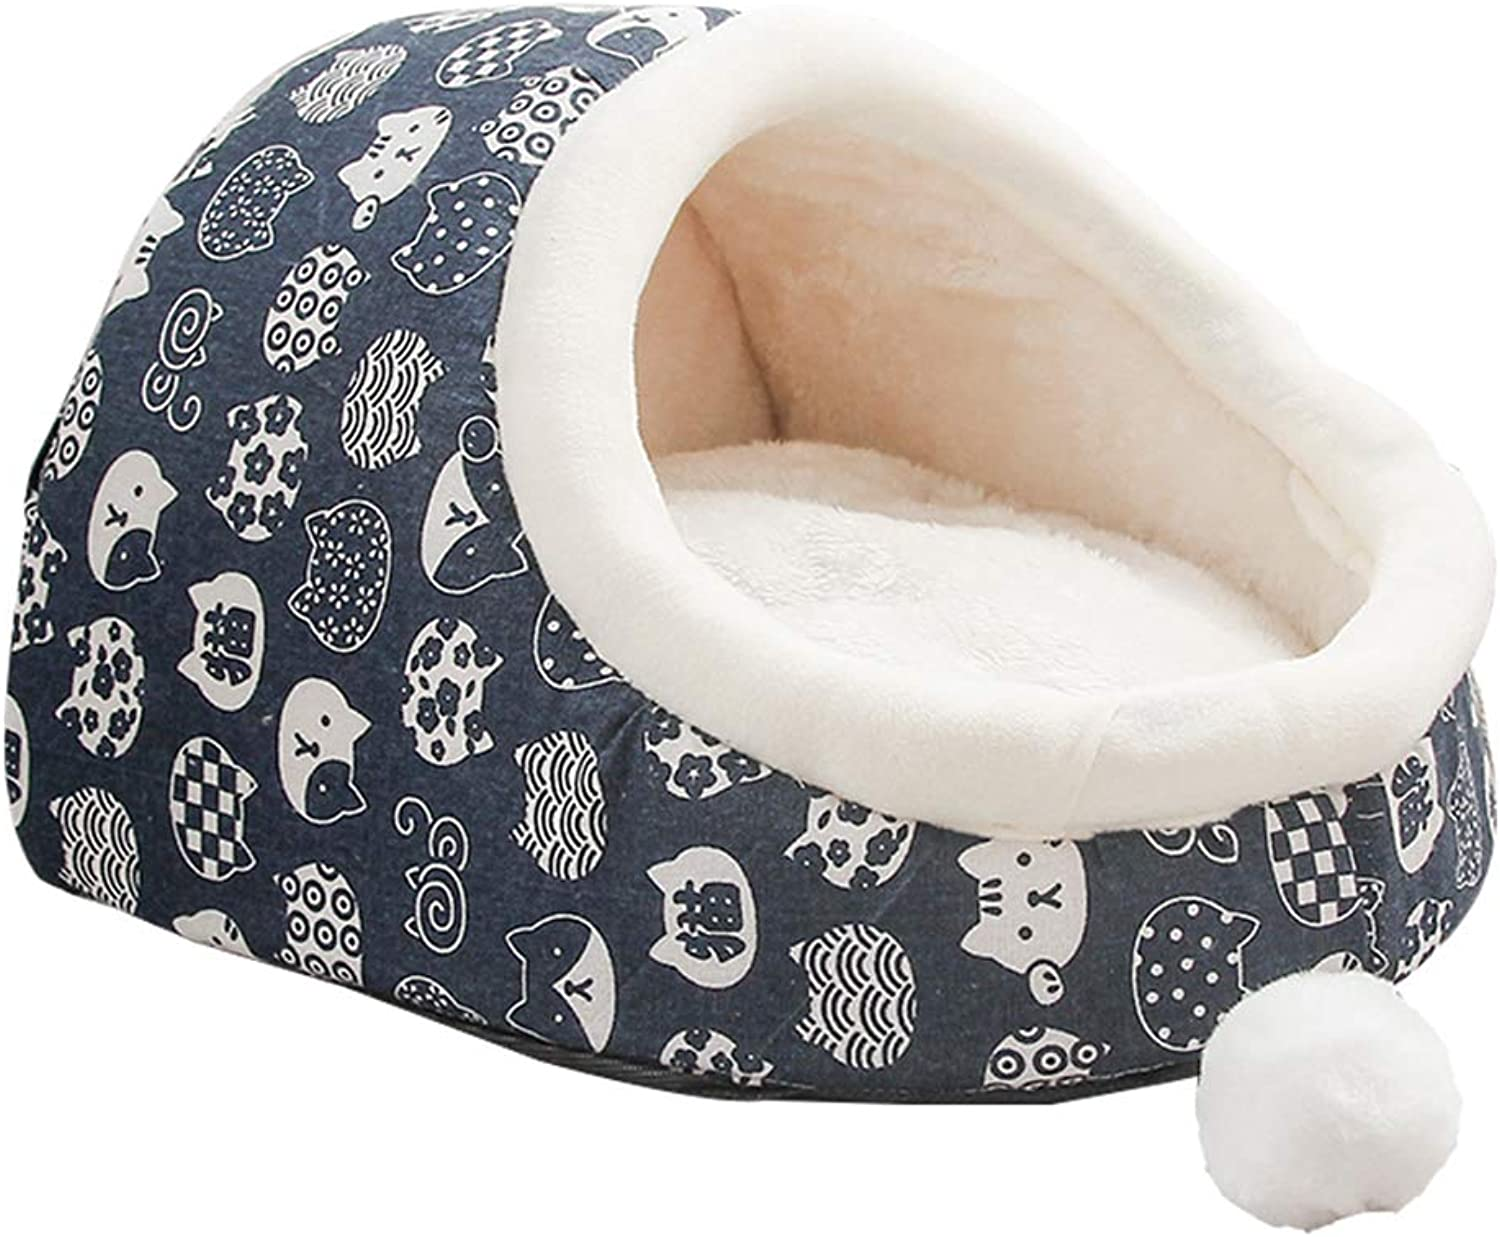 Home of Boutique Indoor Dog Cat Bed House, Pet Beds Warm Soft Washable for Small Medium Dogs and Cats,L